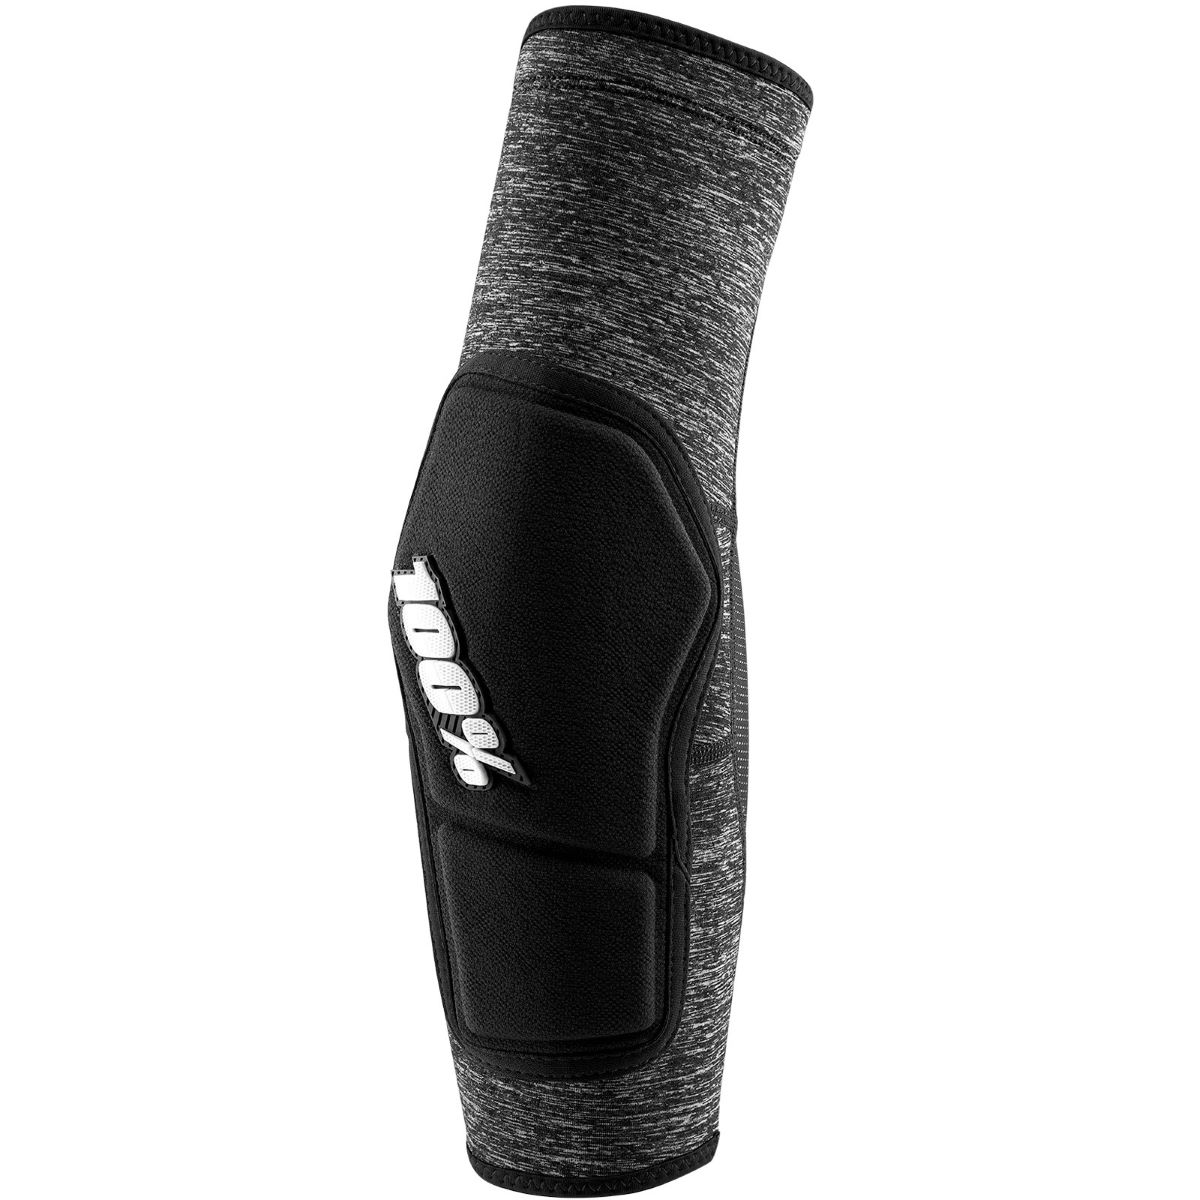 100% Ridecamp Elbow Guard - S Grey/black  Elbow Pads